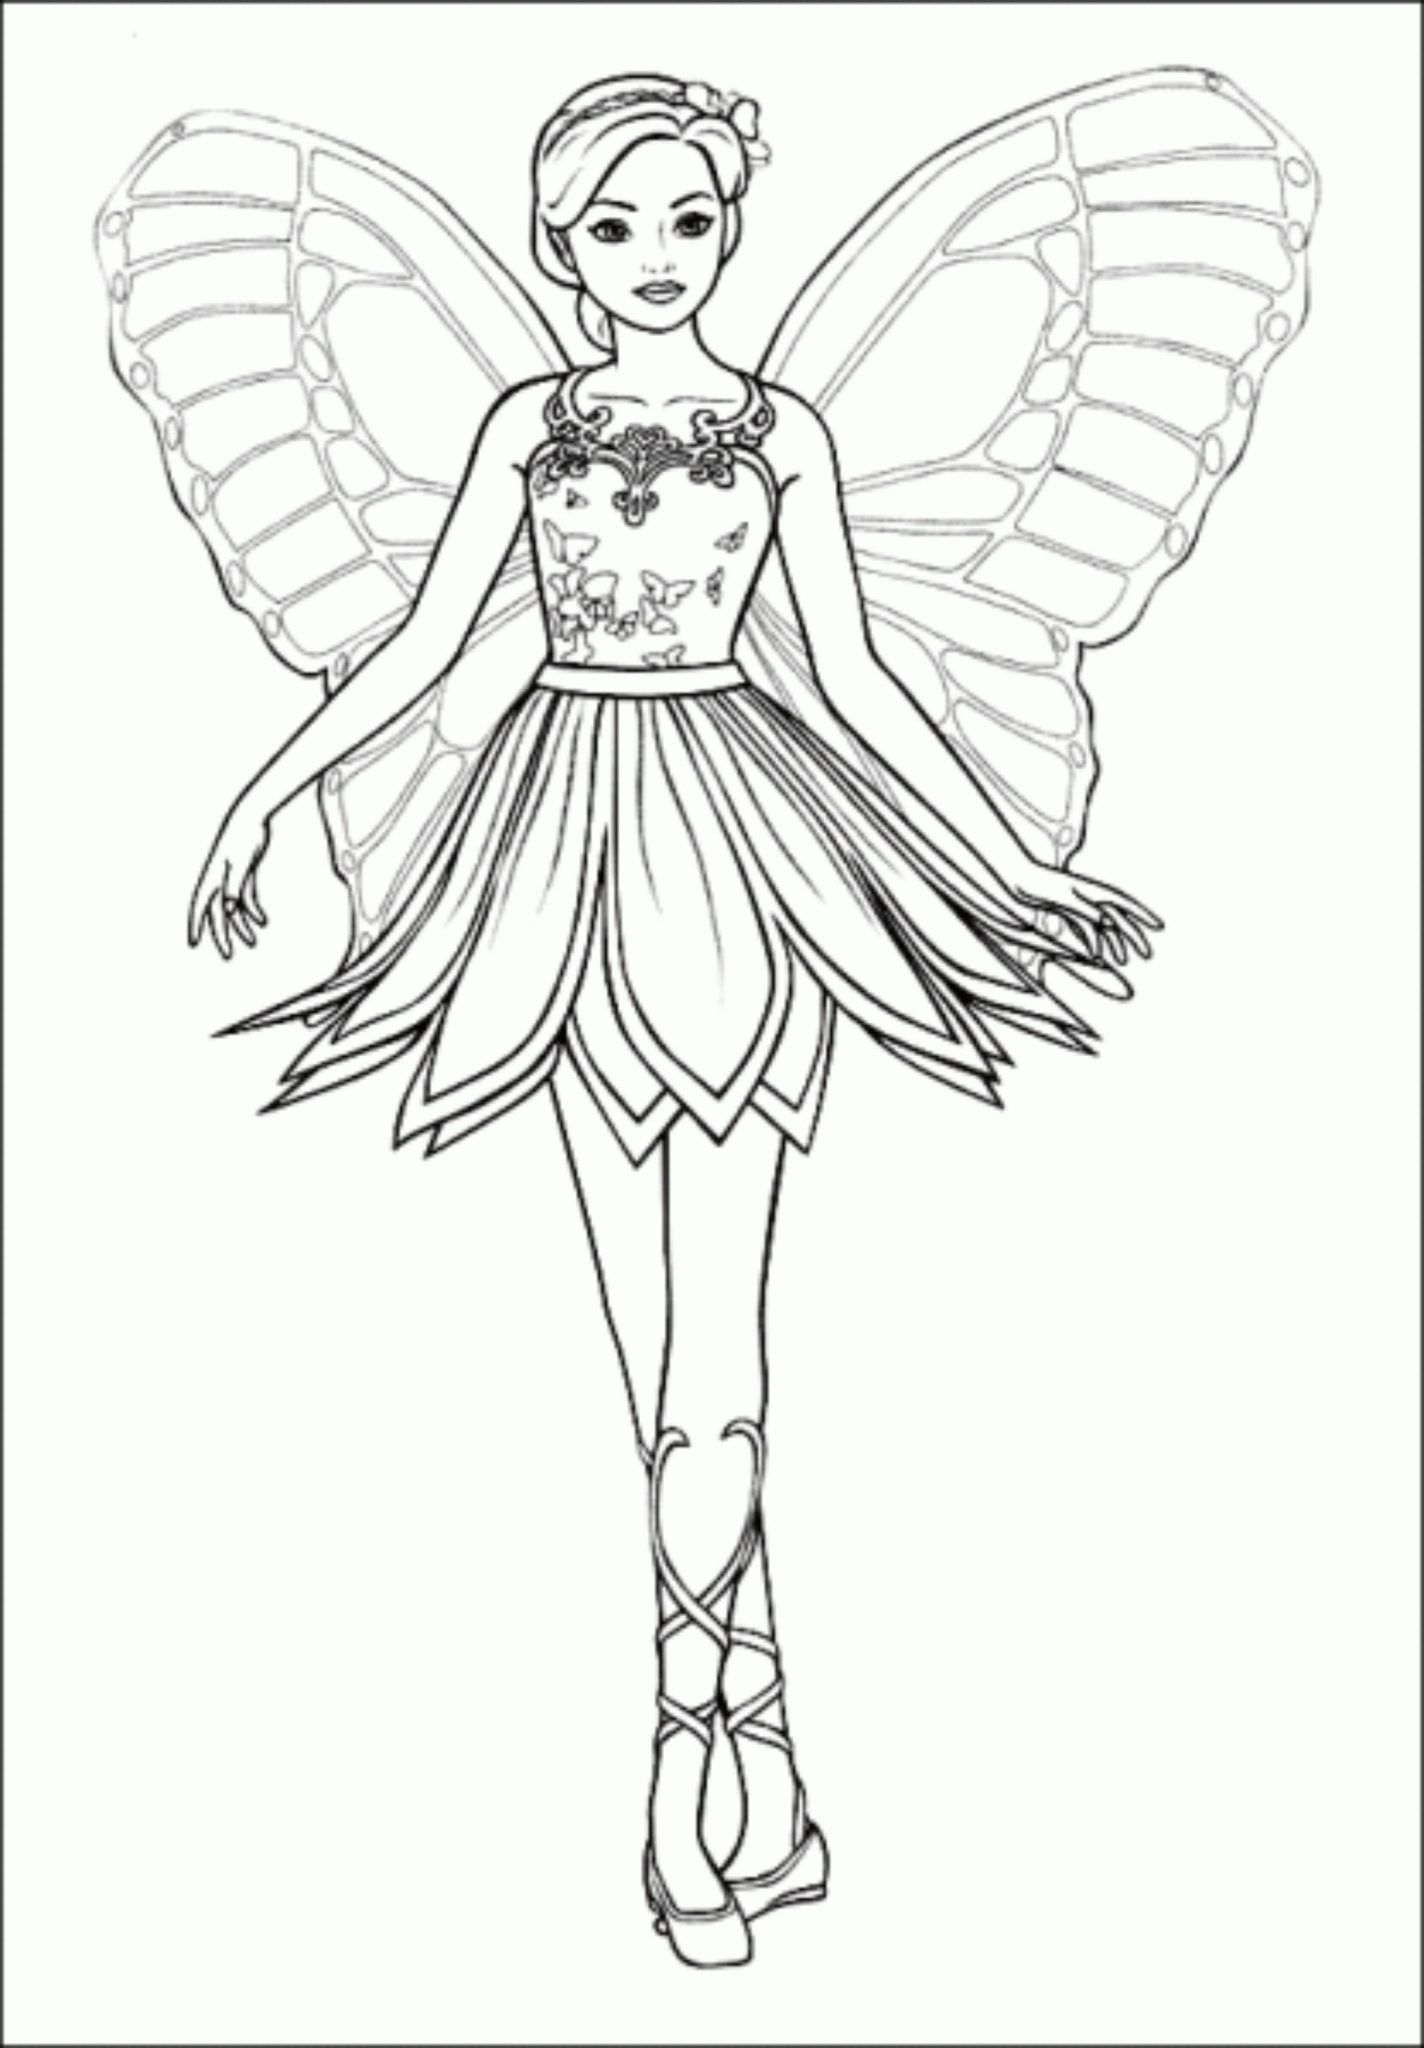 barbie-princess-coloring-pages | | BestAppsForKids.com